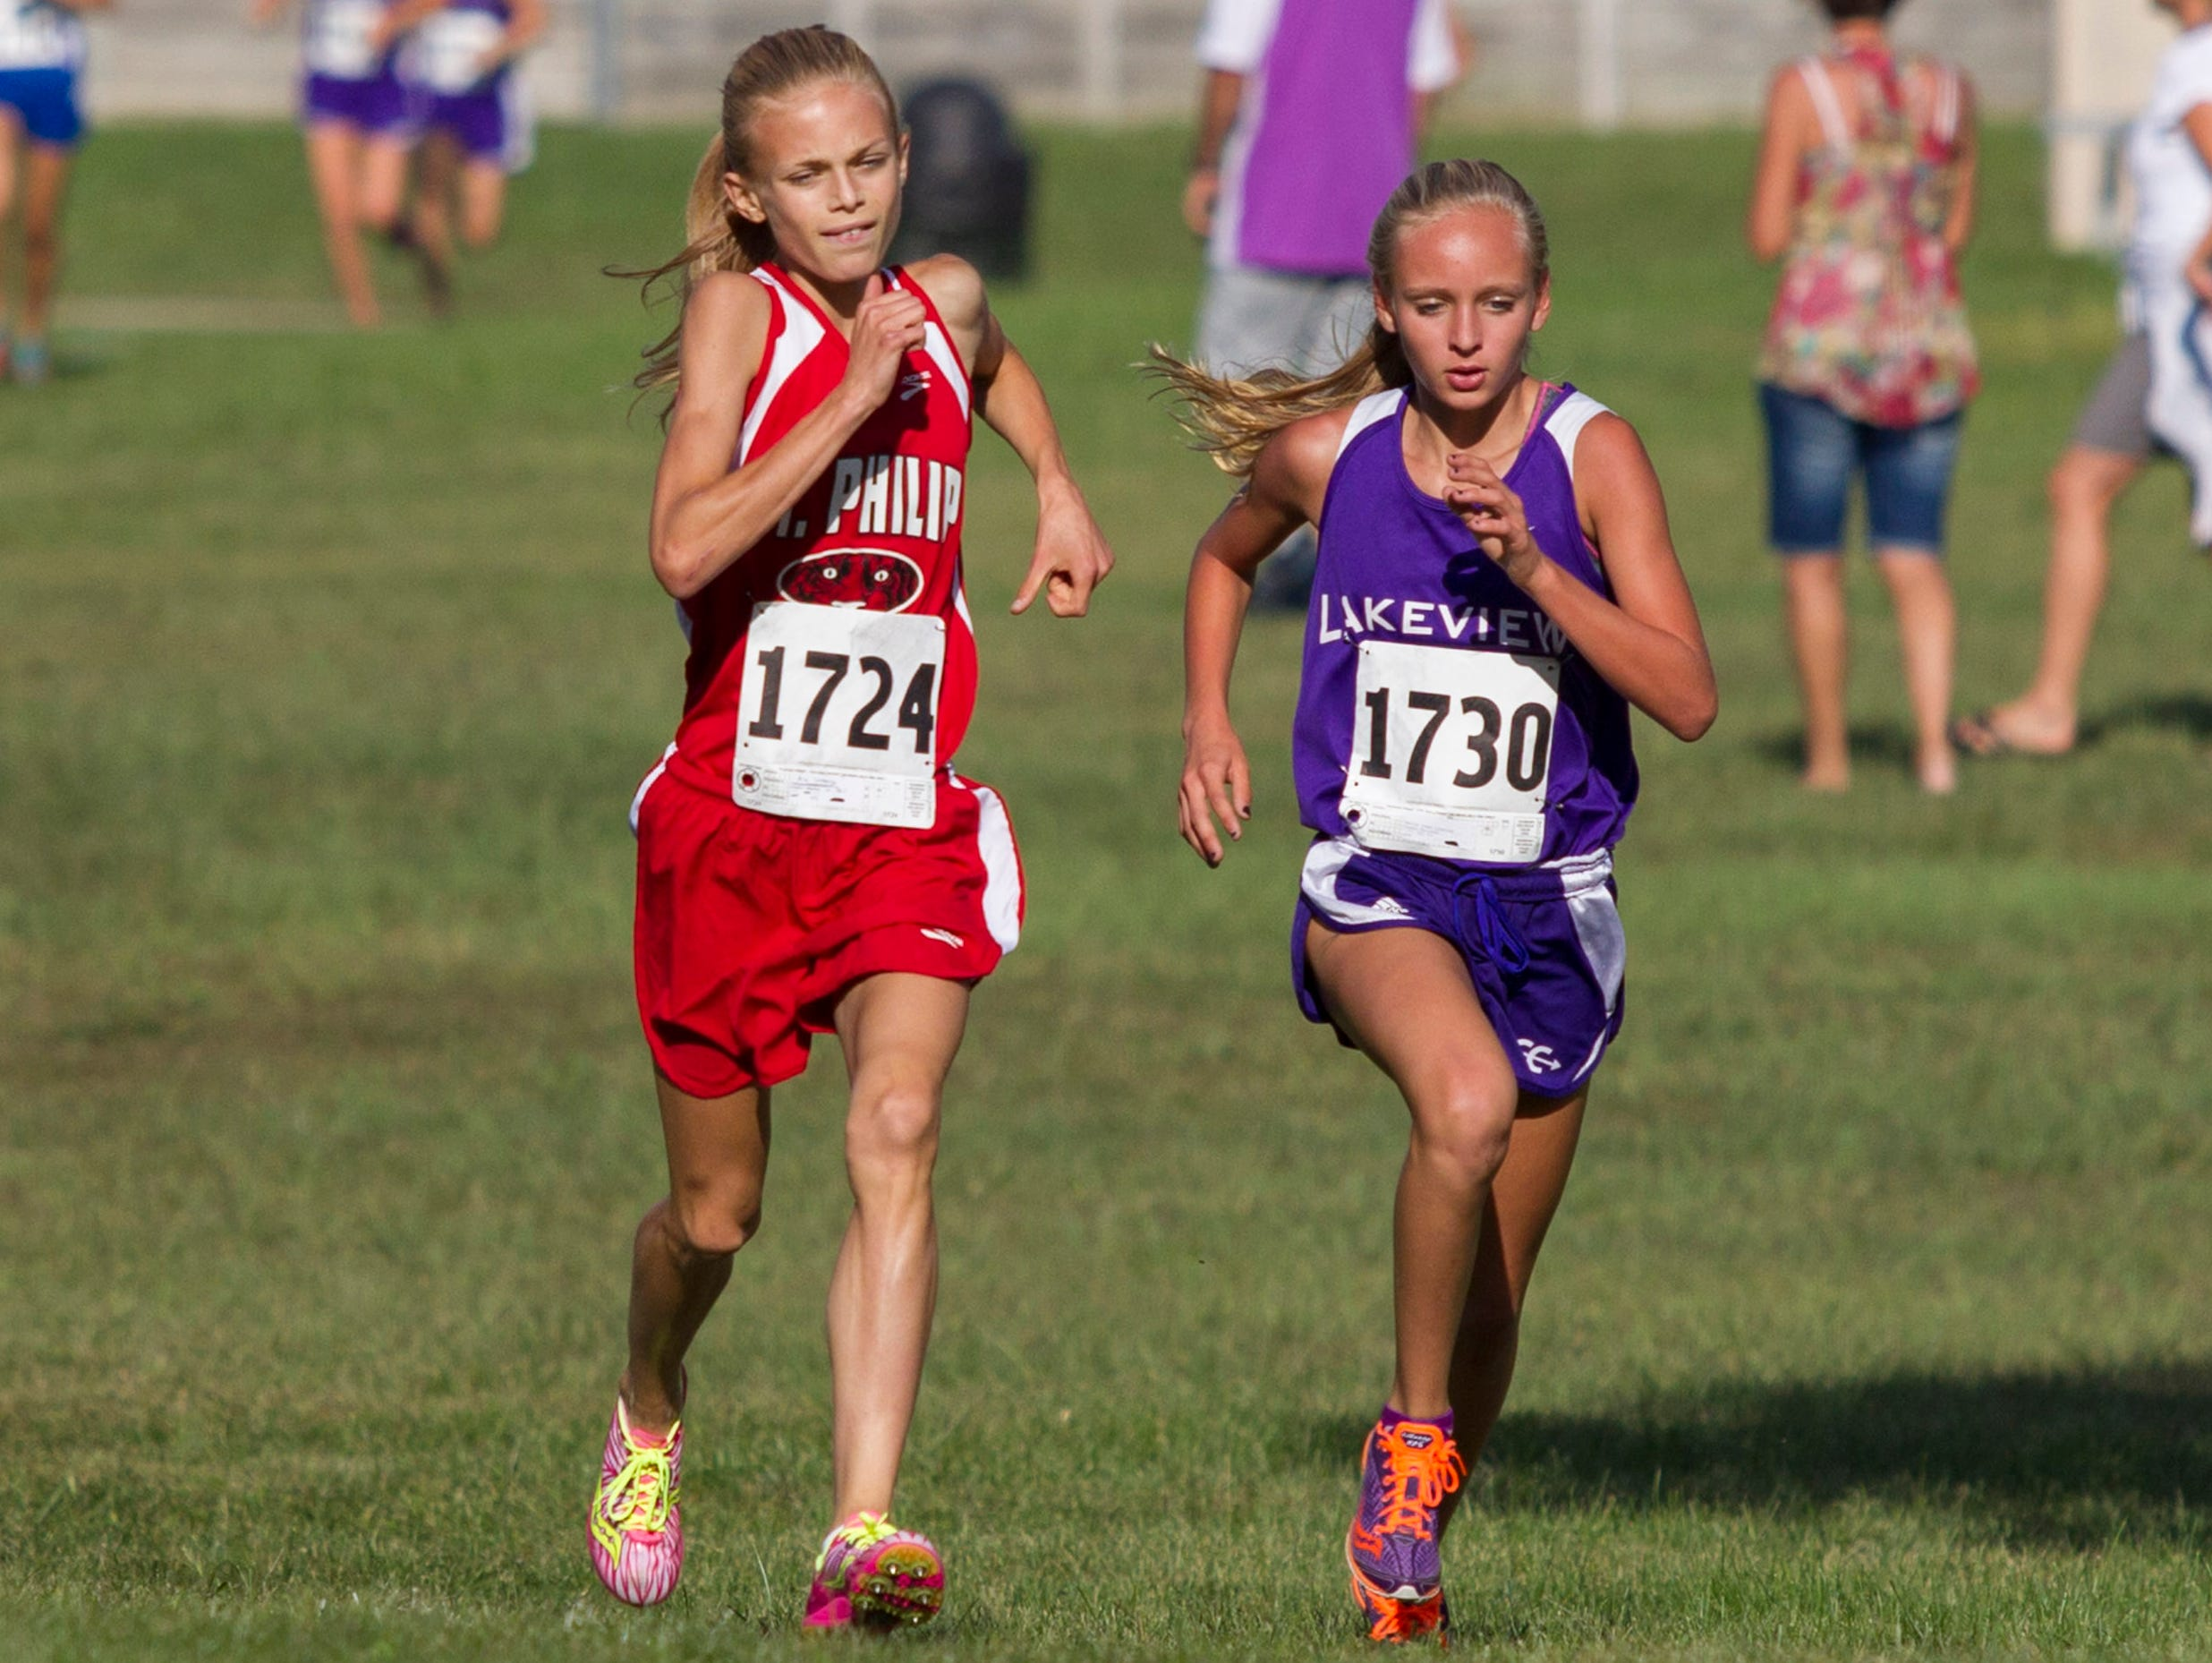 St. Philip's Ava Strenge and Lakeview's Logann Haluszka.